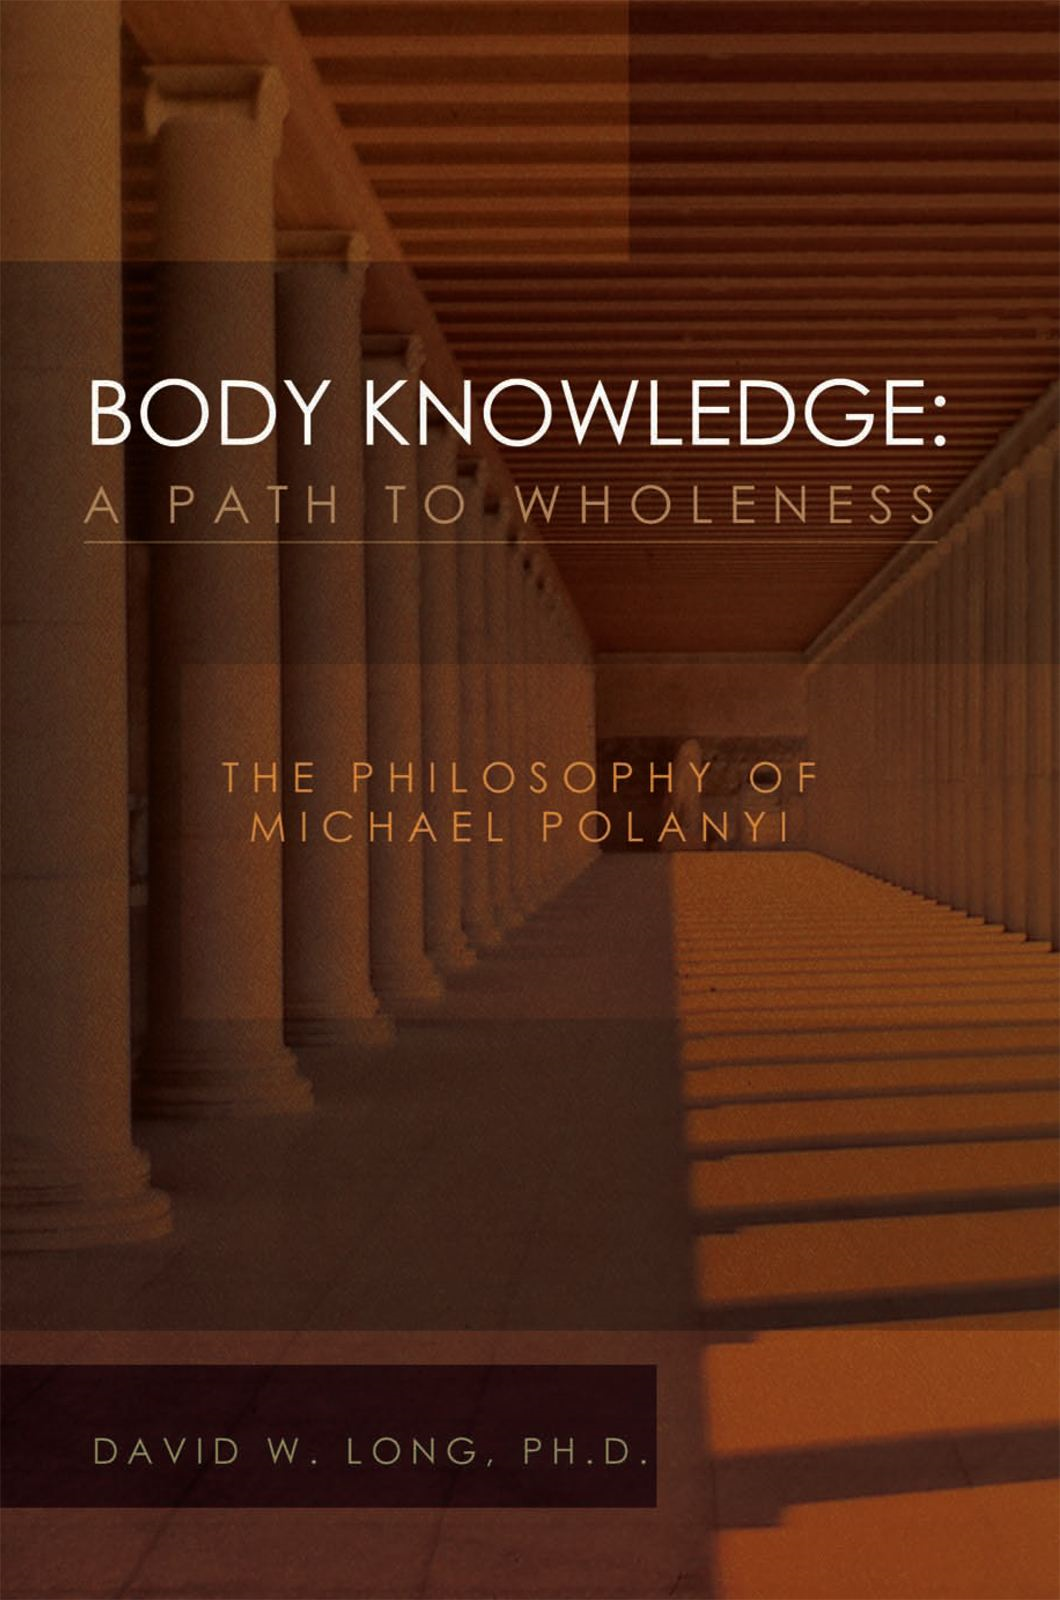 Body Knowledge: A Path to Wholeness